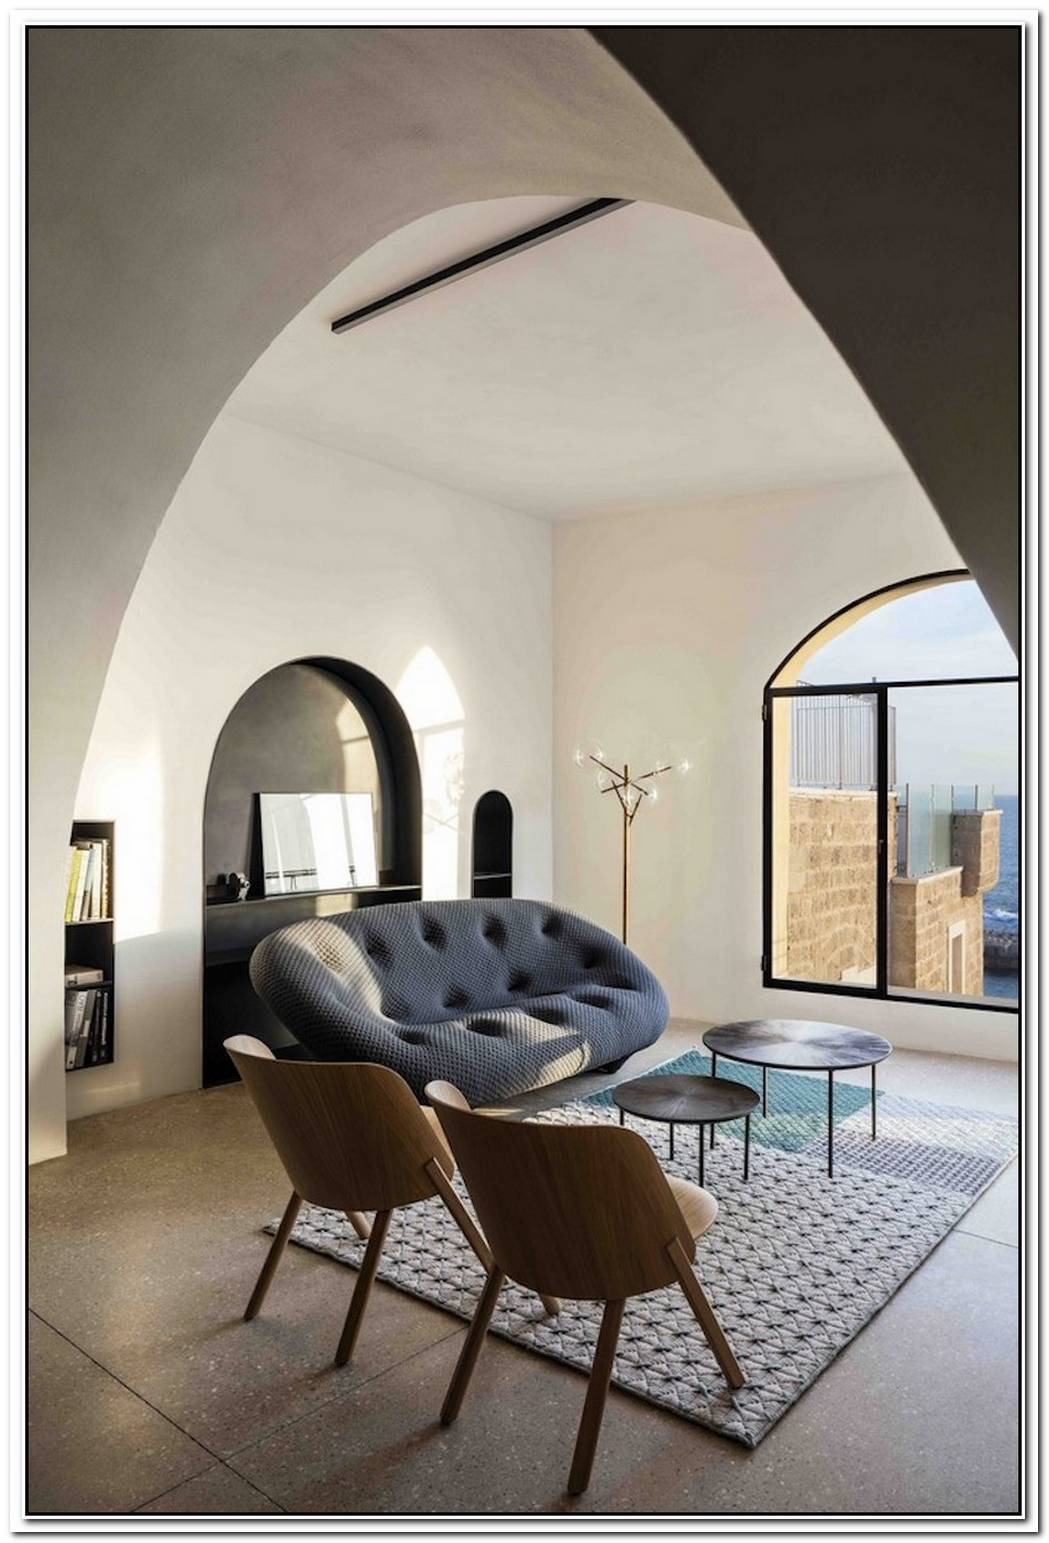 Renovated And Restructured Narrow Apartment In A Historic Neighborhood From Barcelona